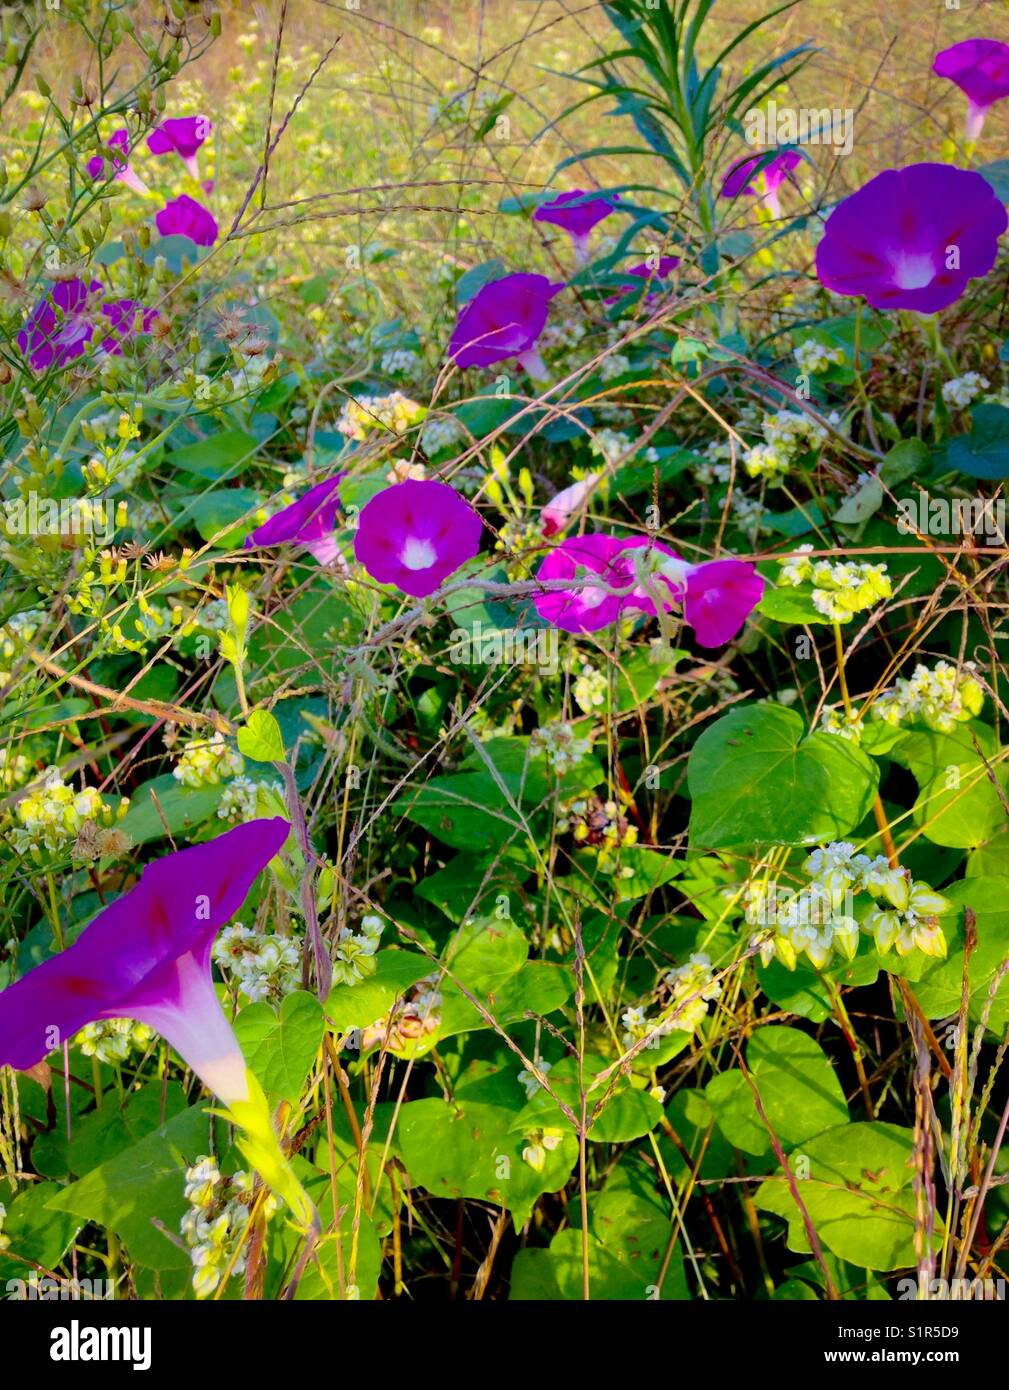 Morning glories in the field - Stock Image